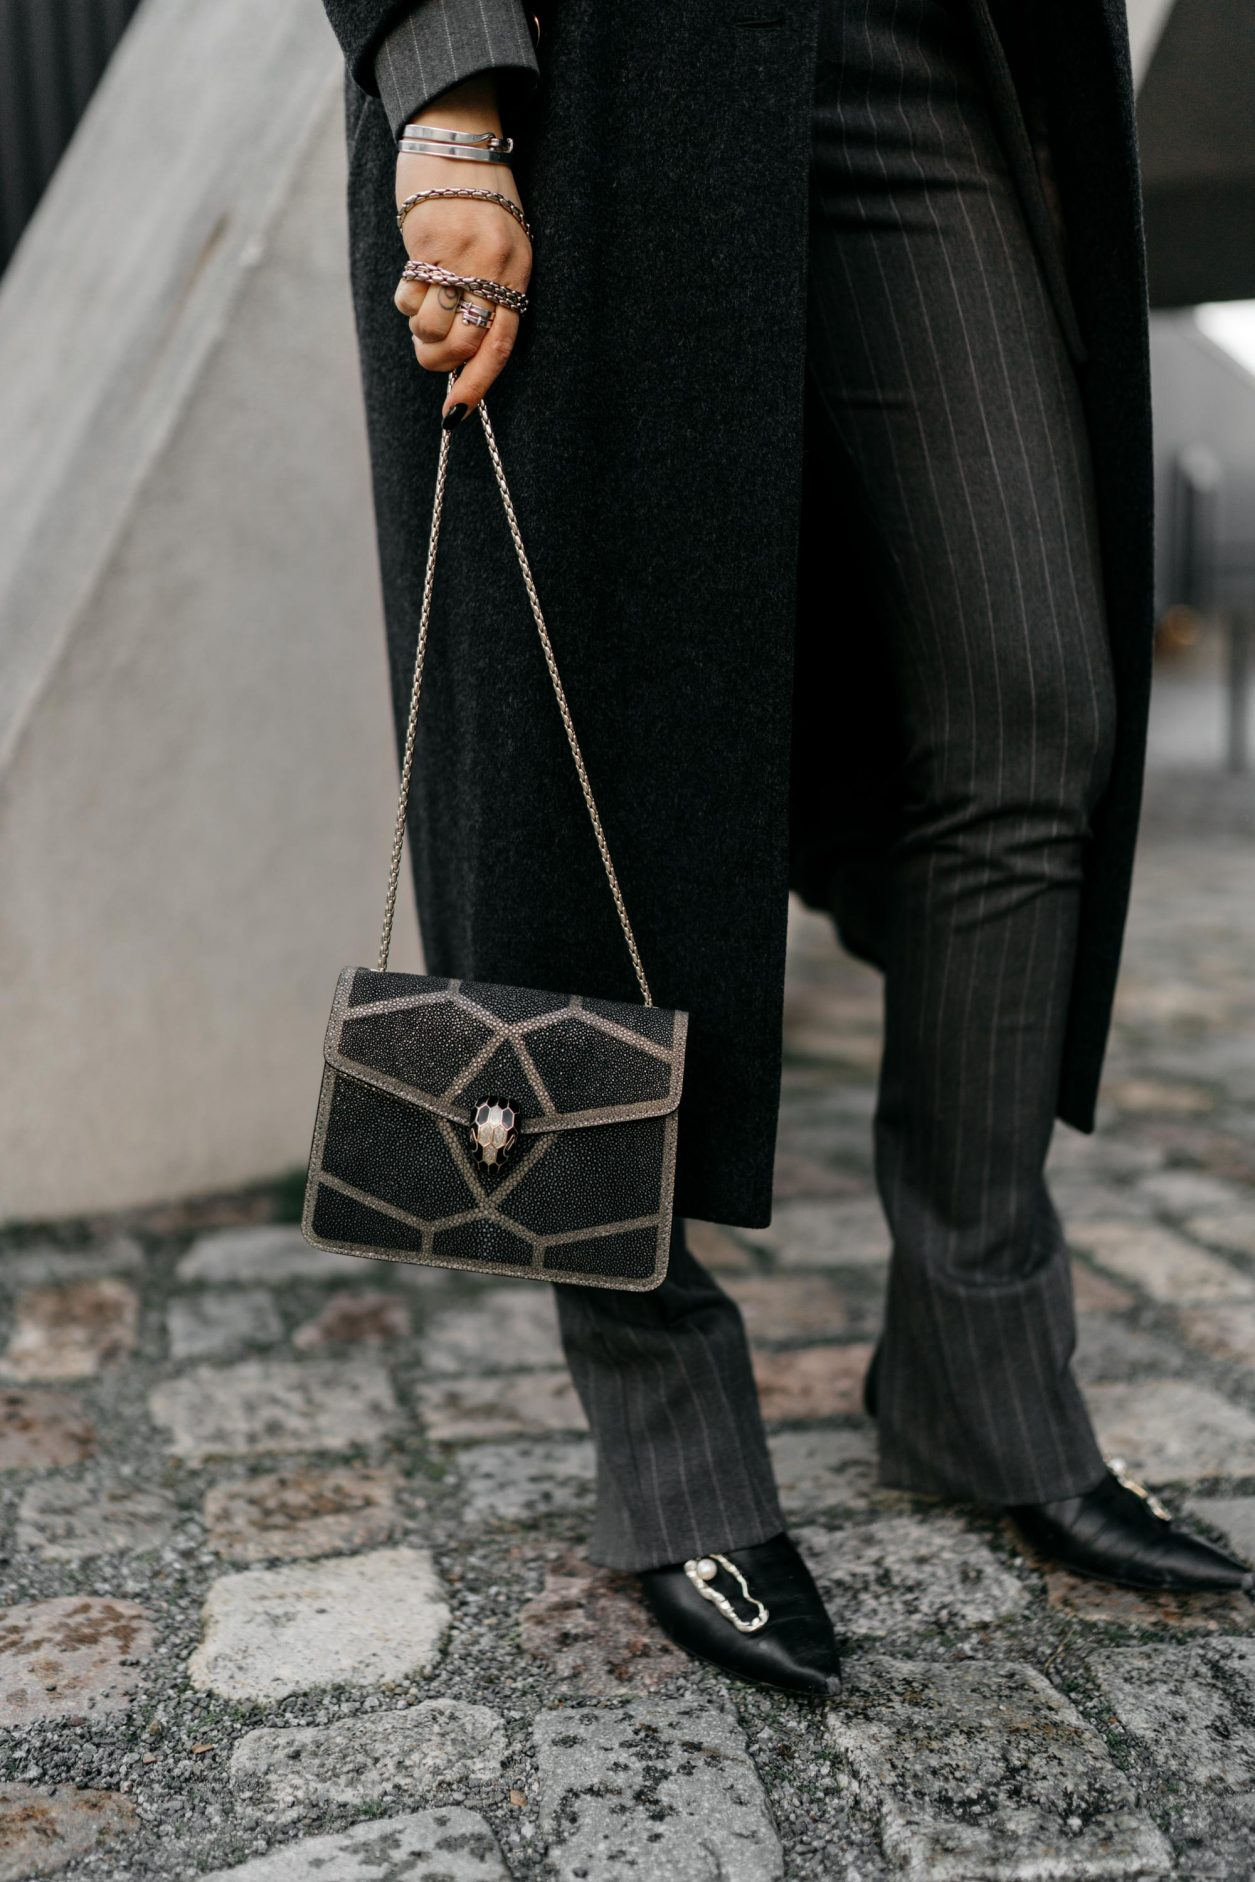 Streetstyle by Masha Sedgwick | Fashion blogger from Berlin | Everyday business outfit ideas, business chic, high end, tomboy style | Wearing grey checked Mango suit, dark grey vintage Celine coat, black leather booties by Flattered, glitter mini bag by Bulgari